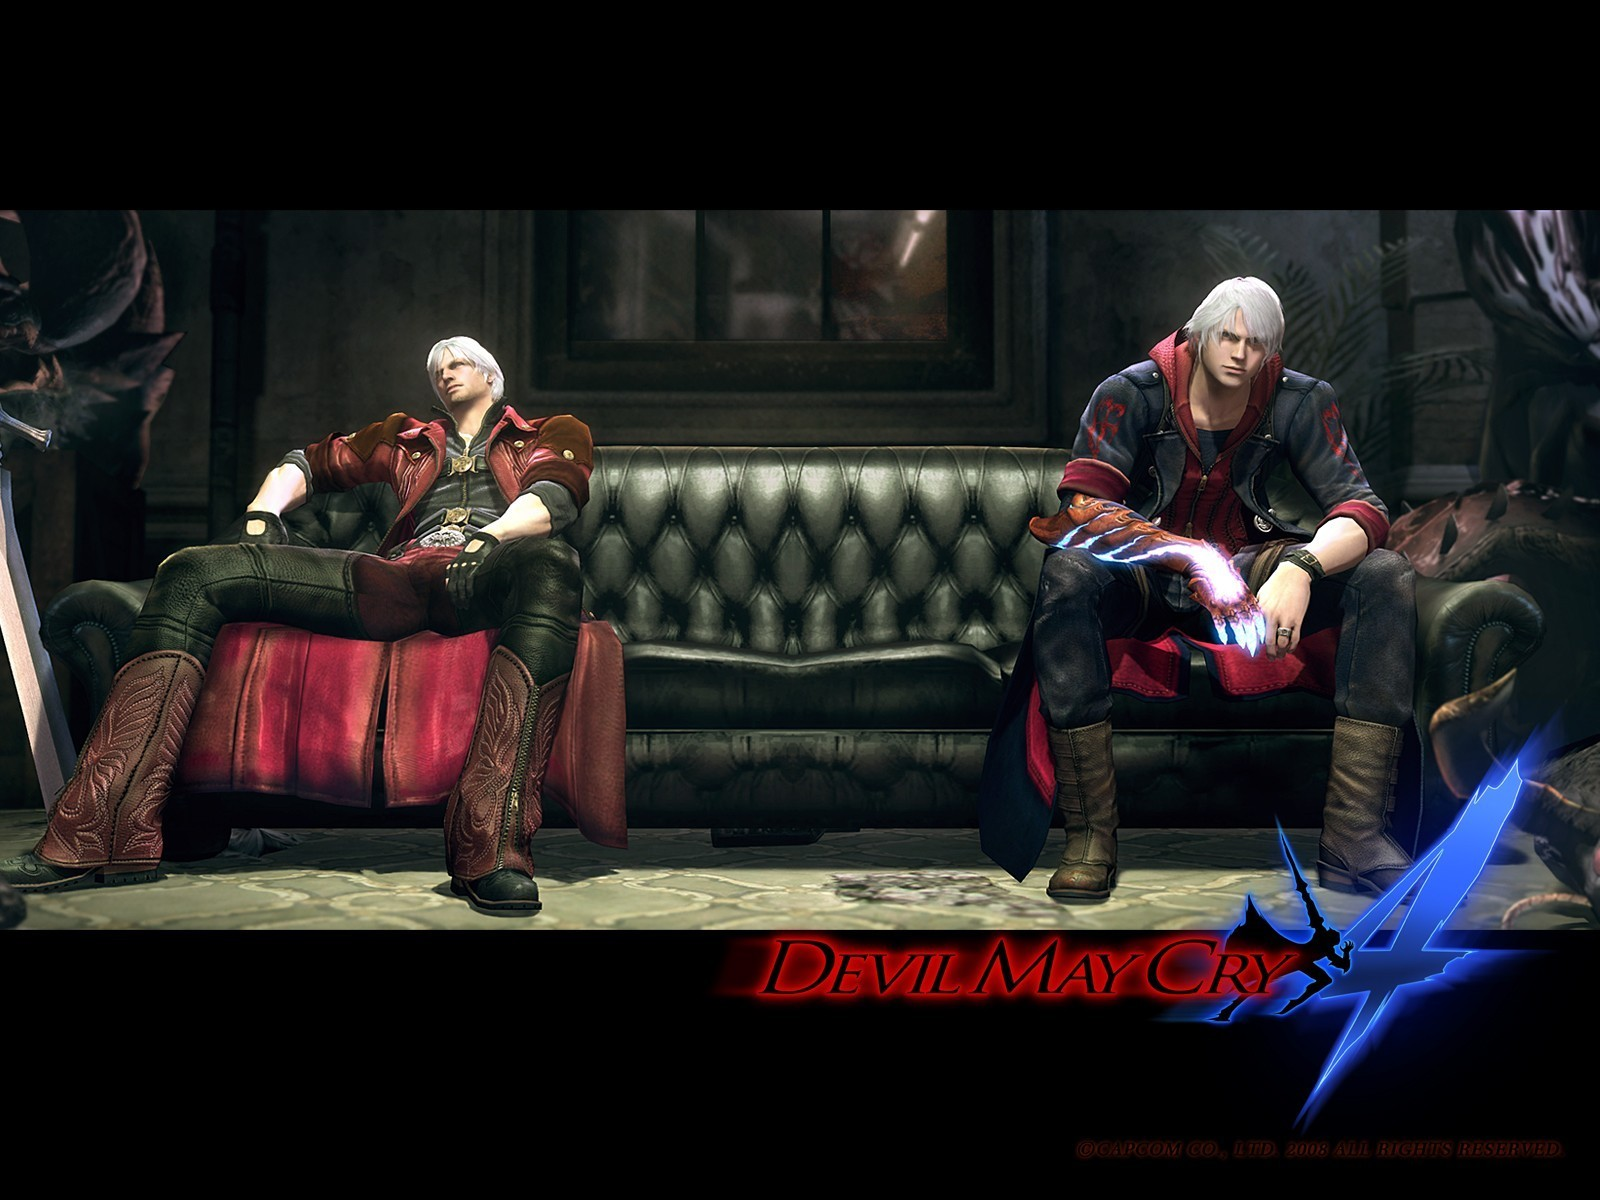 Bitgamer devil may cry 4 full riphack and slash action2016